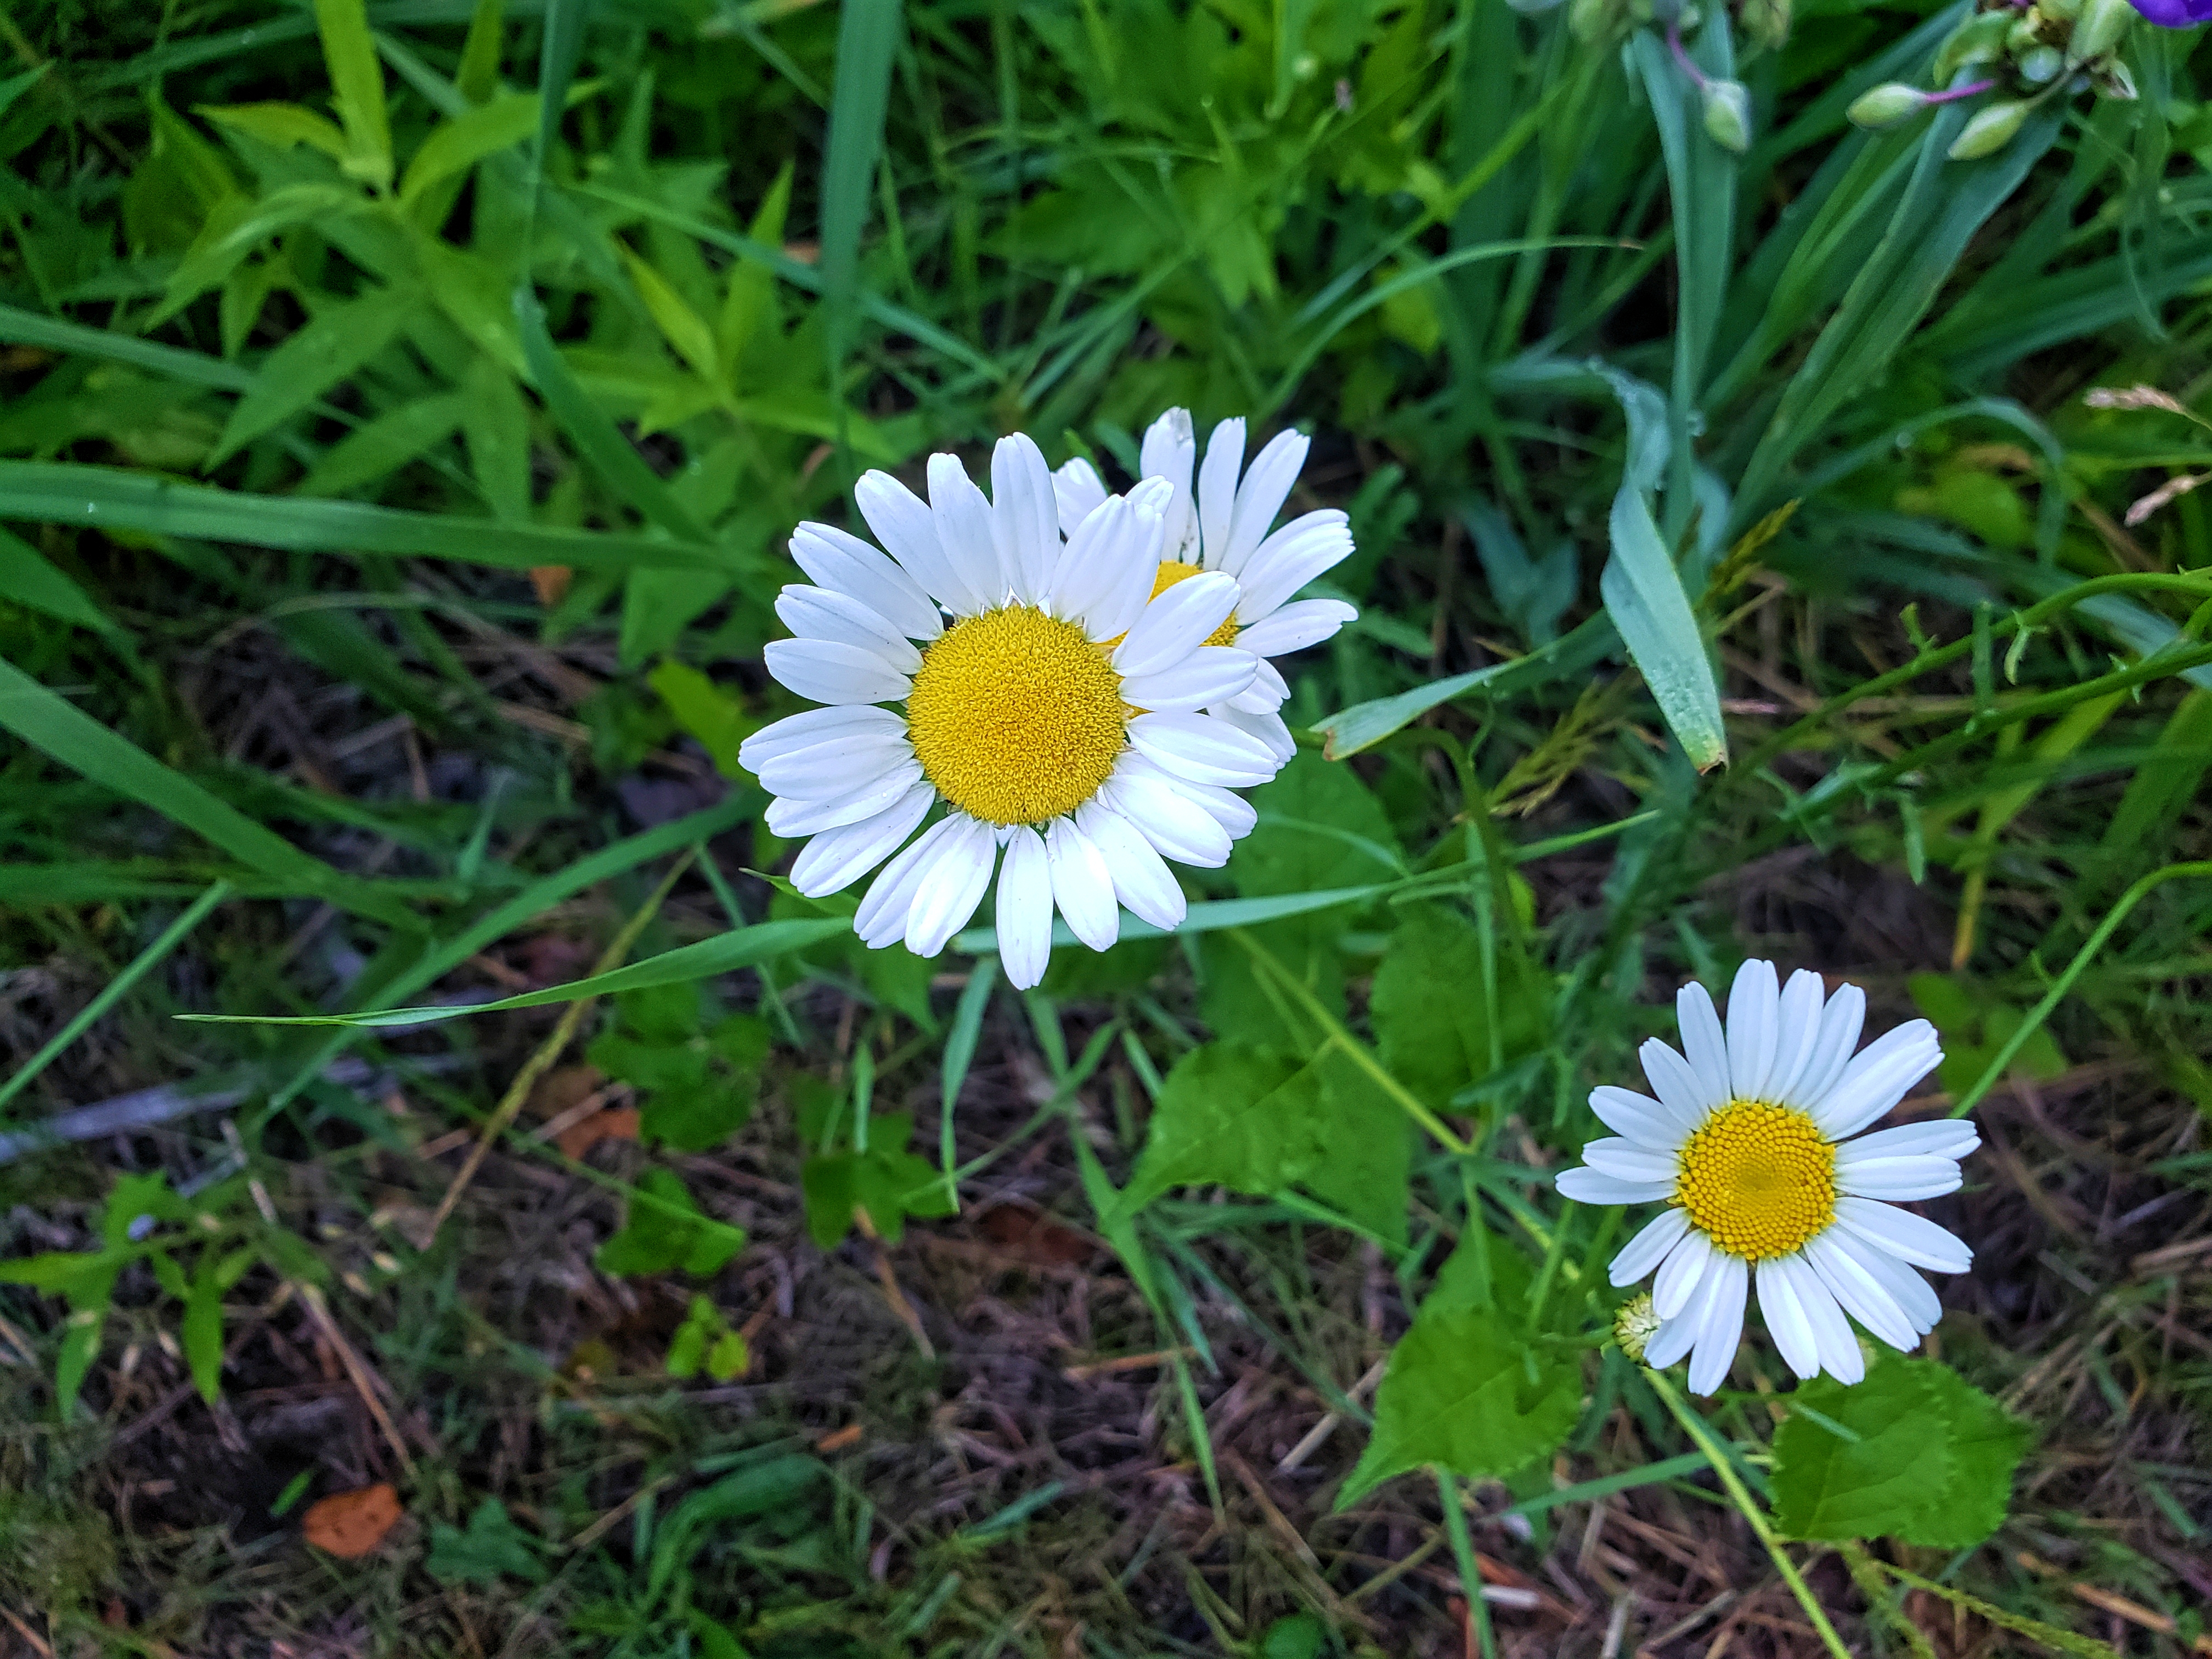 Daisy's are just some of the flowers you will see while exploring Draper Twin Lake Park